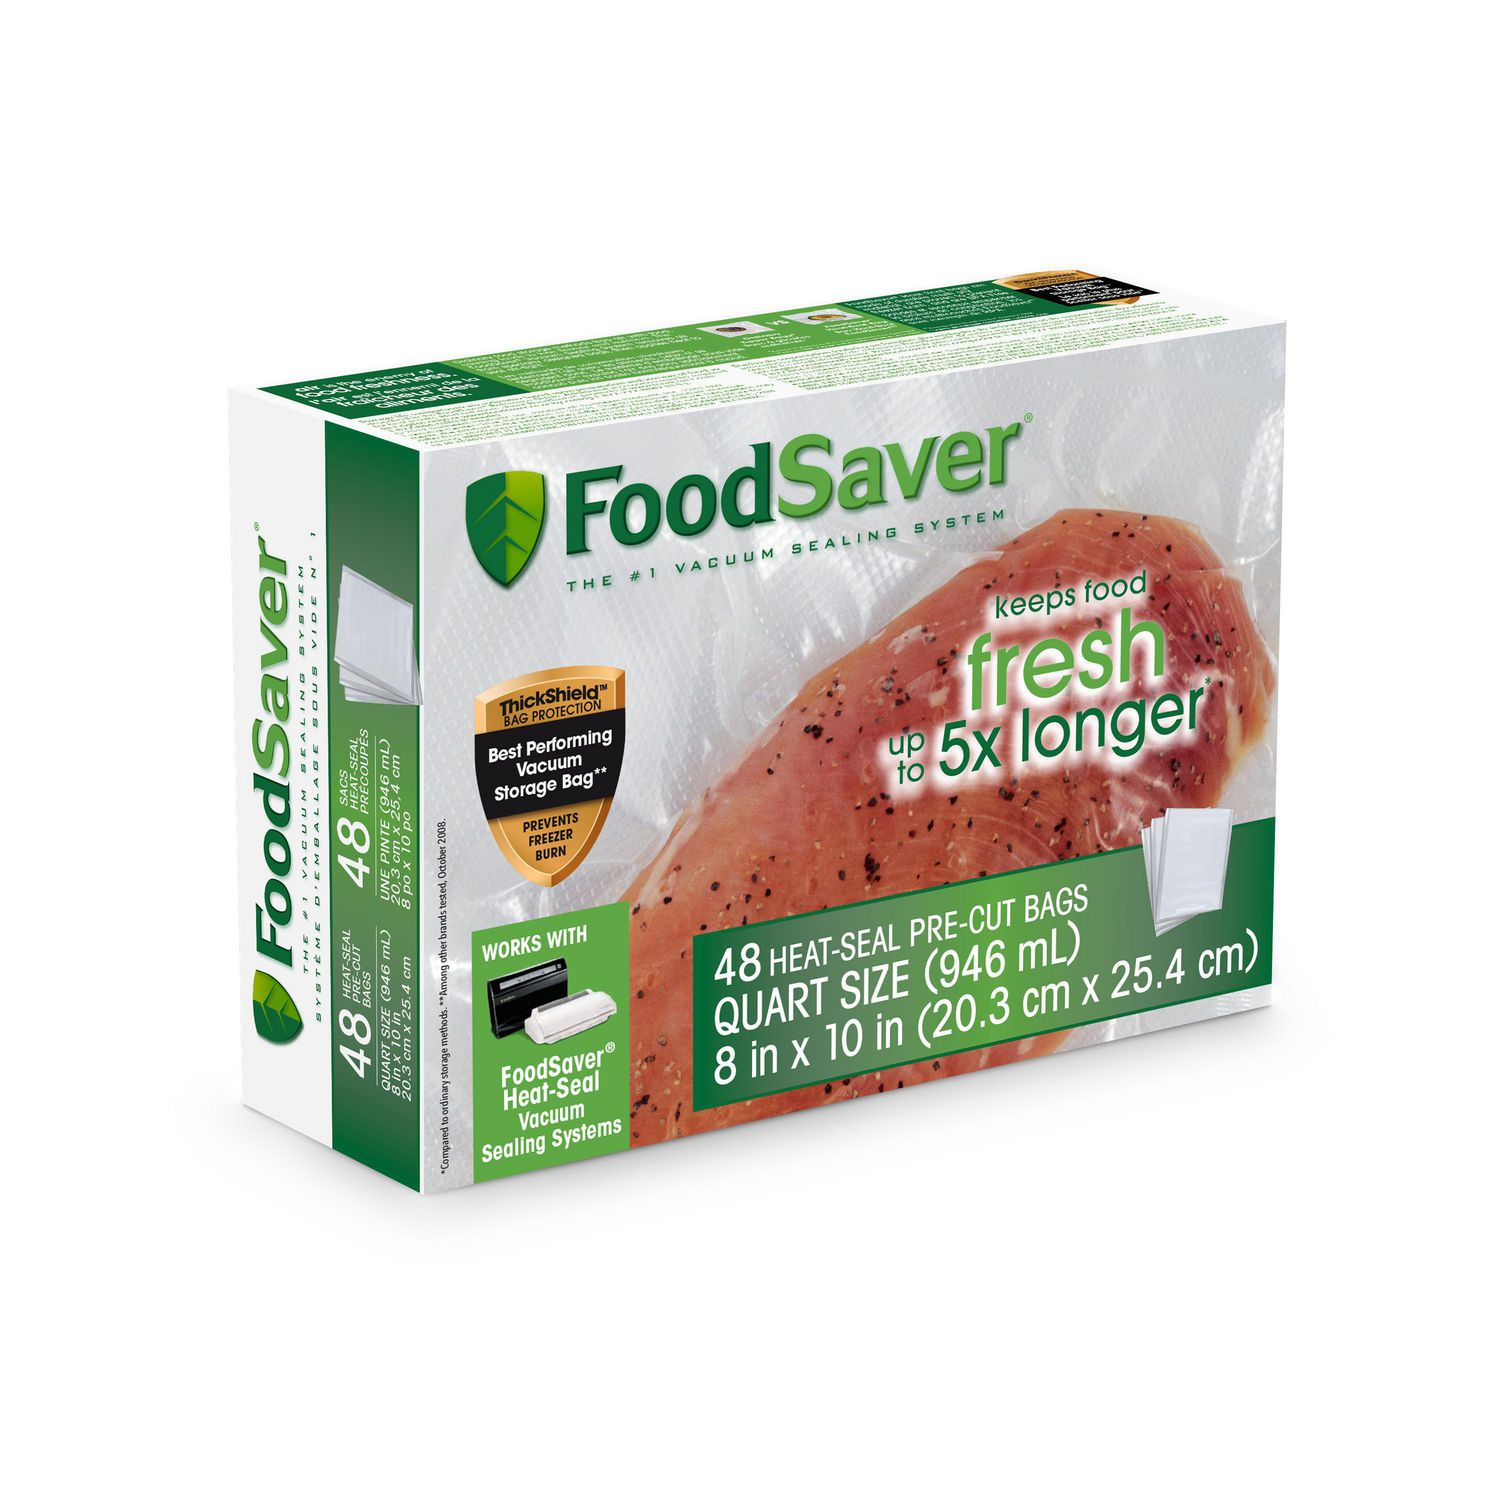 foodsaver 1 quart precut vacuum seal bags with bpa free multilayer construction for food preservation 48 count